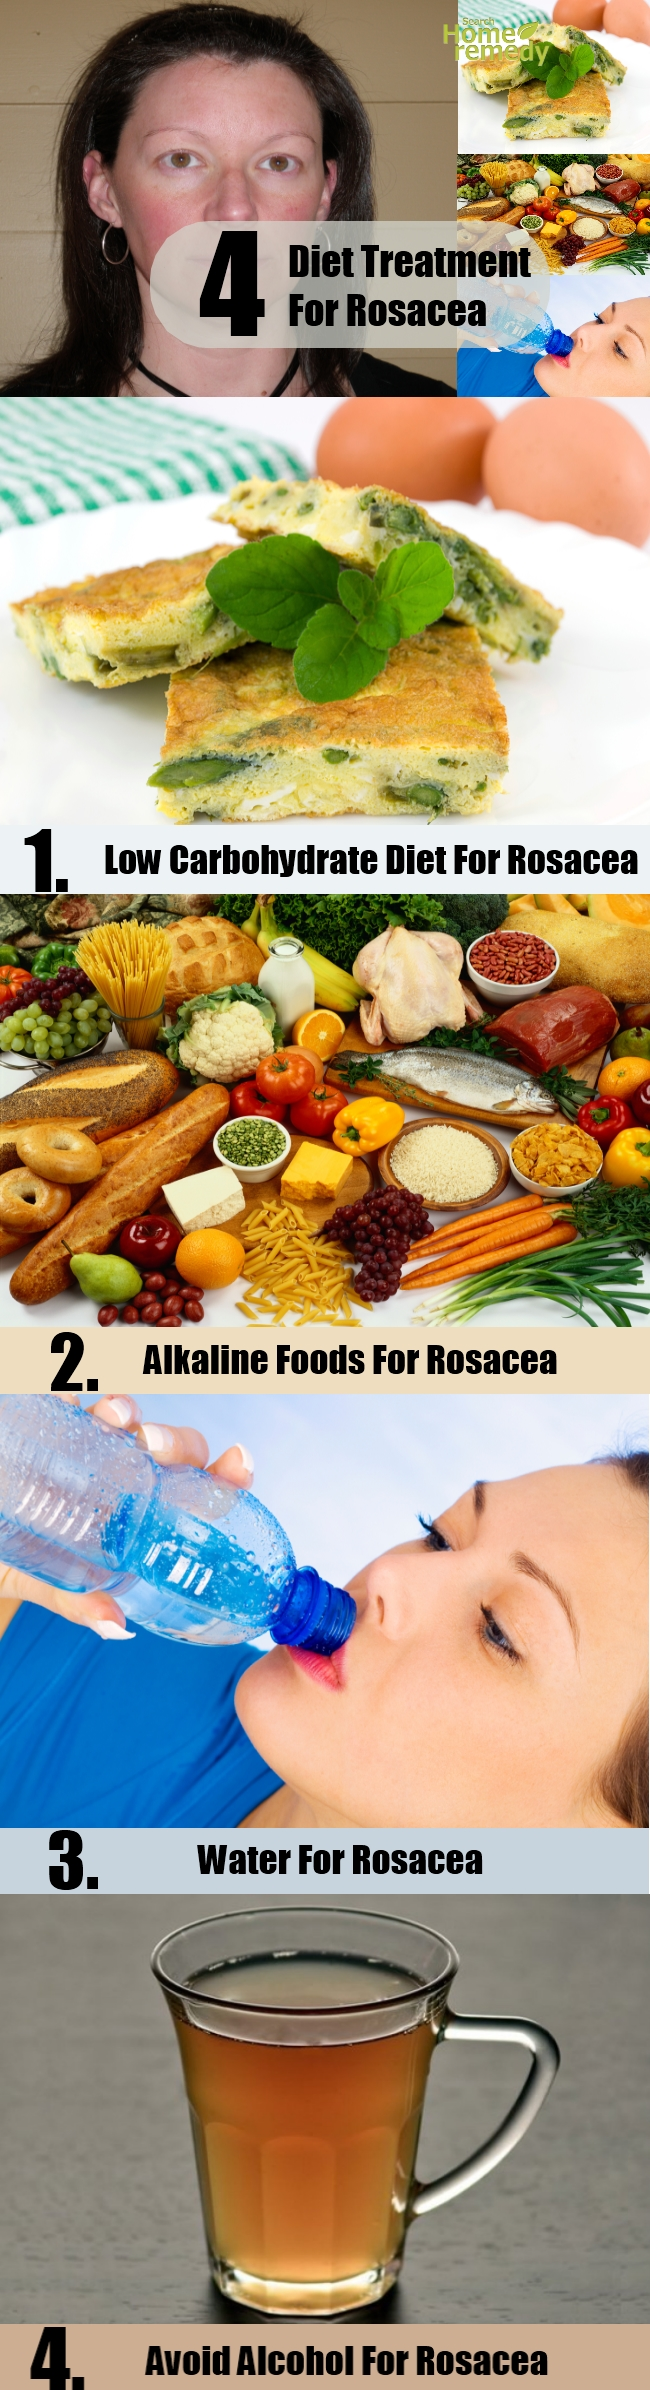 4 Diet Treatment For Rosacea